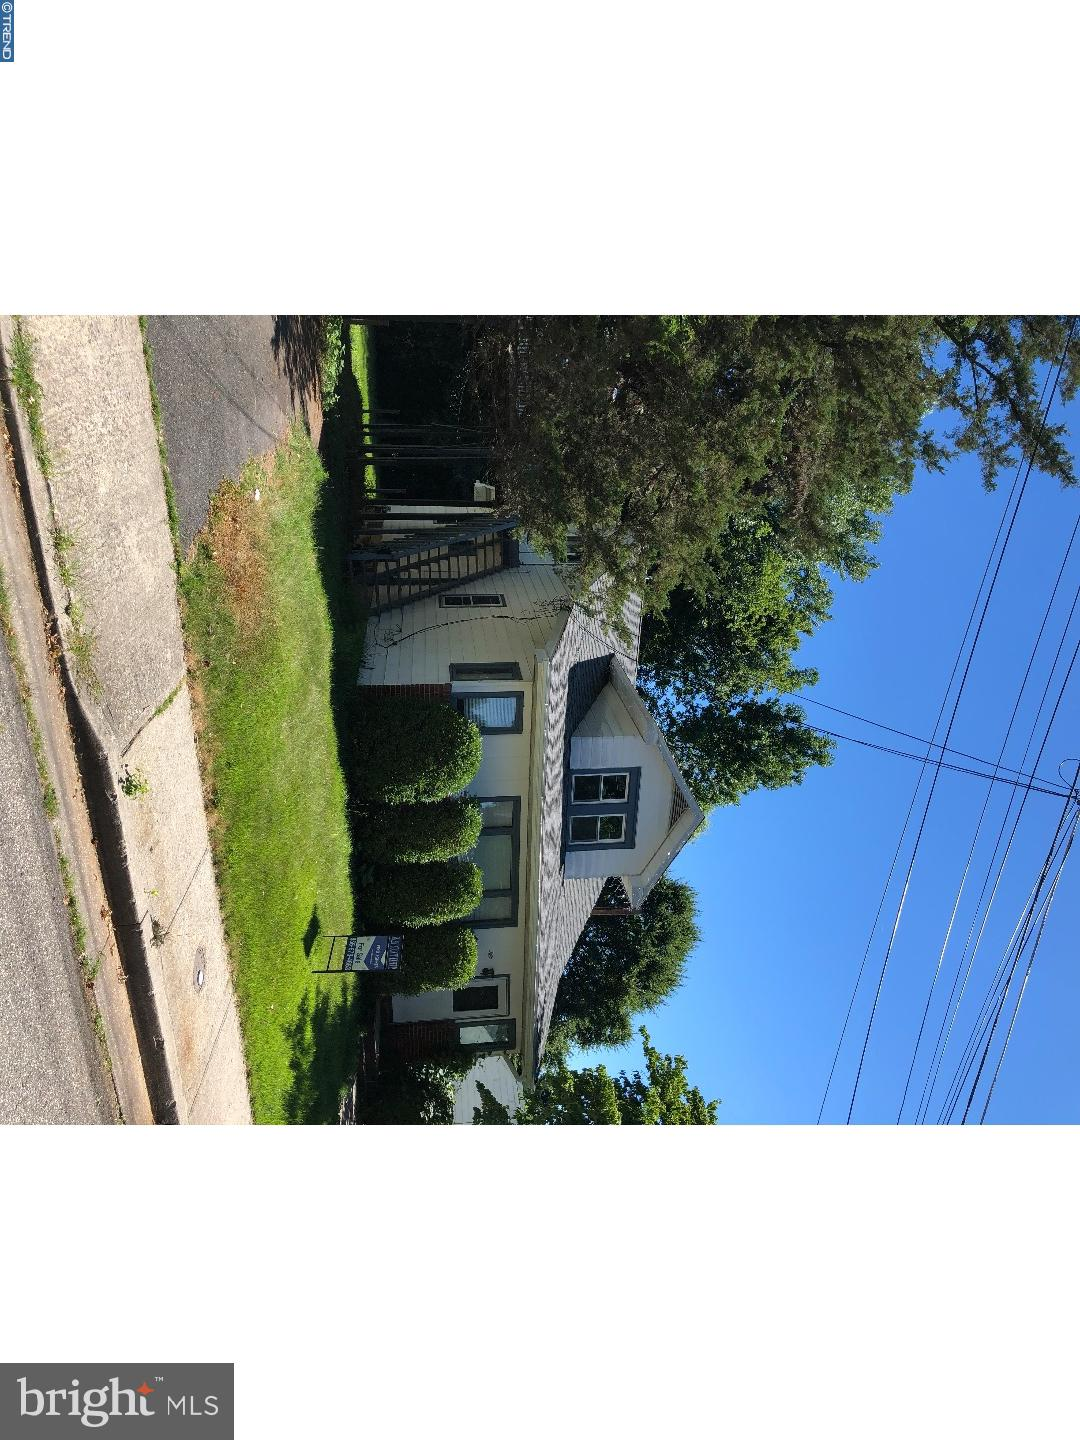 Investors or Home Owners!!! Live downstairs & Rent upstairs, or Rent both units! Rental income poten